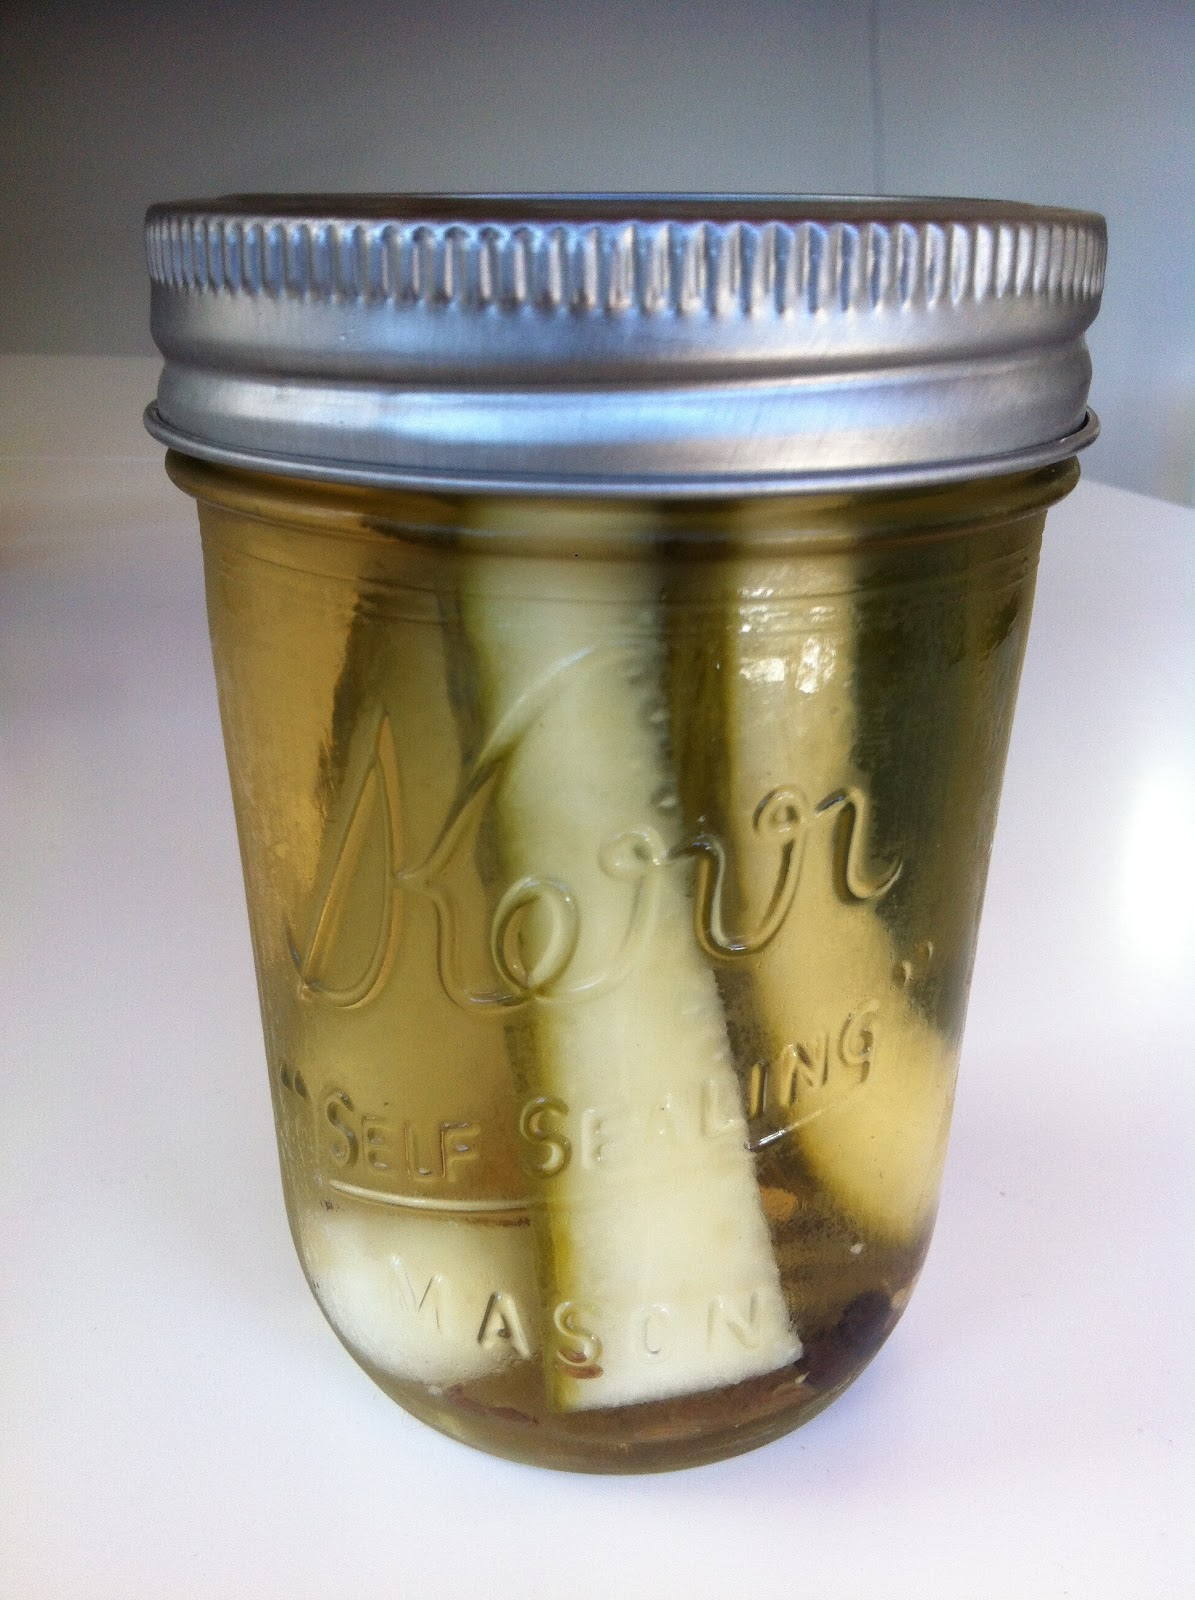 Weekday Gourmet: Recipe (Re)creation: Homemade Refrigerator Pickles